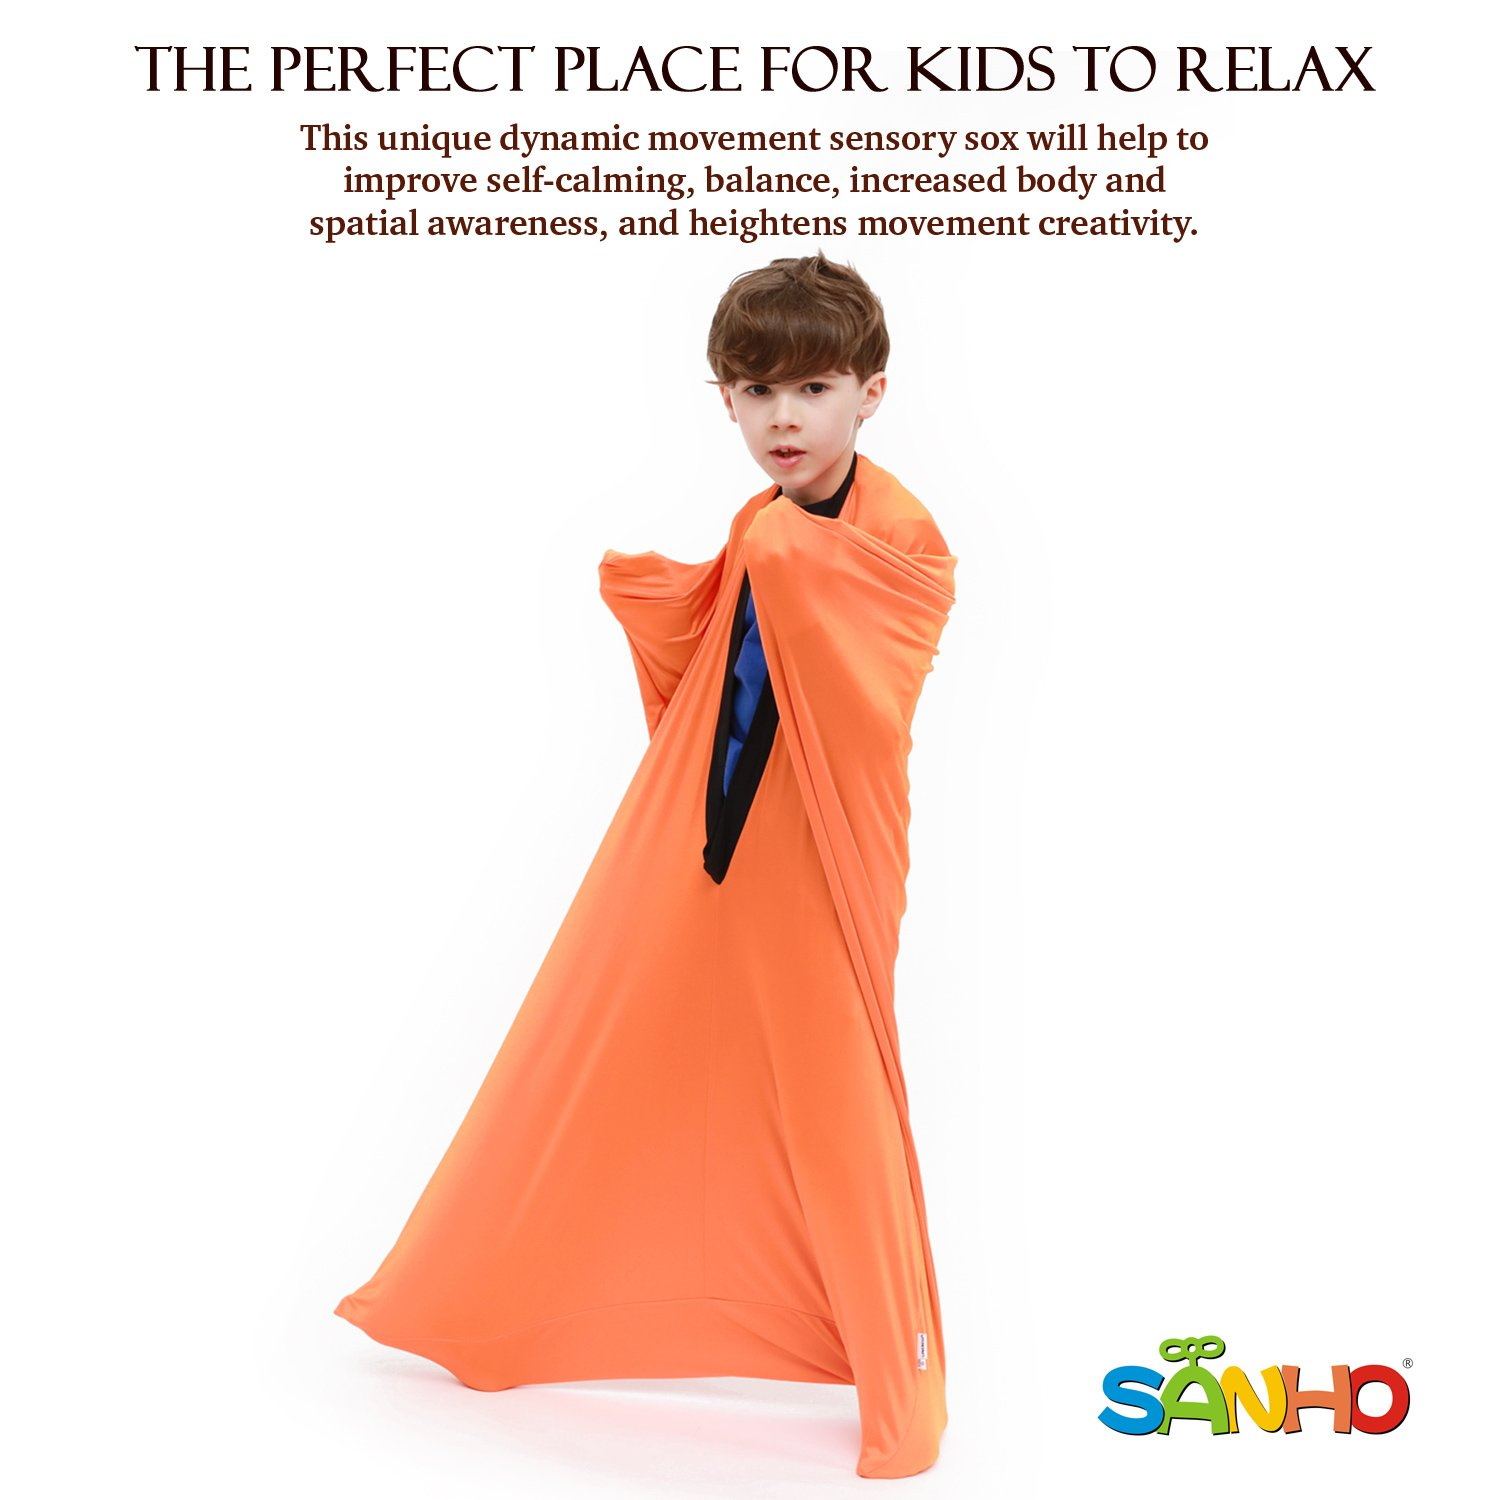 Sanho Yopo Dynamic Movement Sensory Sox, Medium,6-9 years old, 47''LX27''W Orange by Sanho Yopo (Image #2)